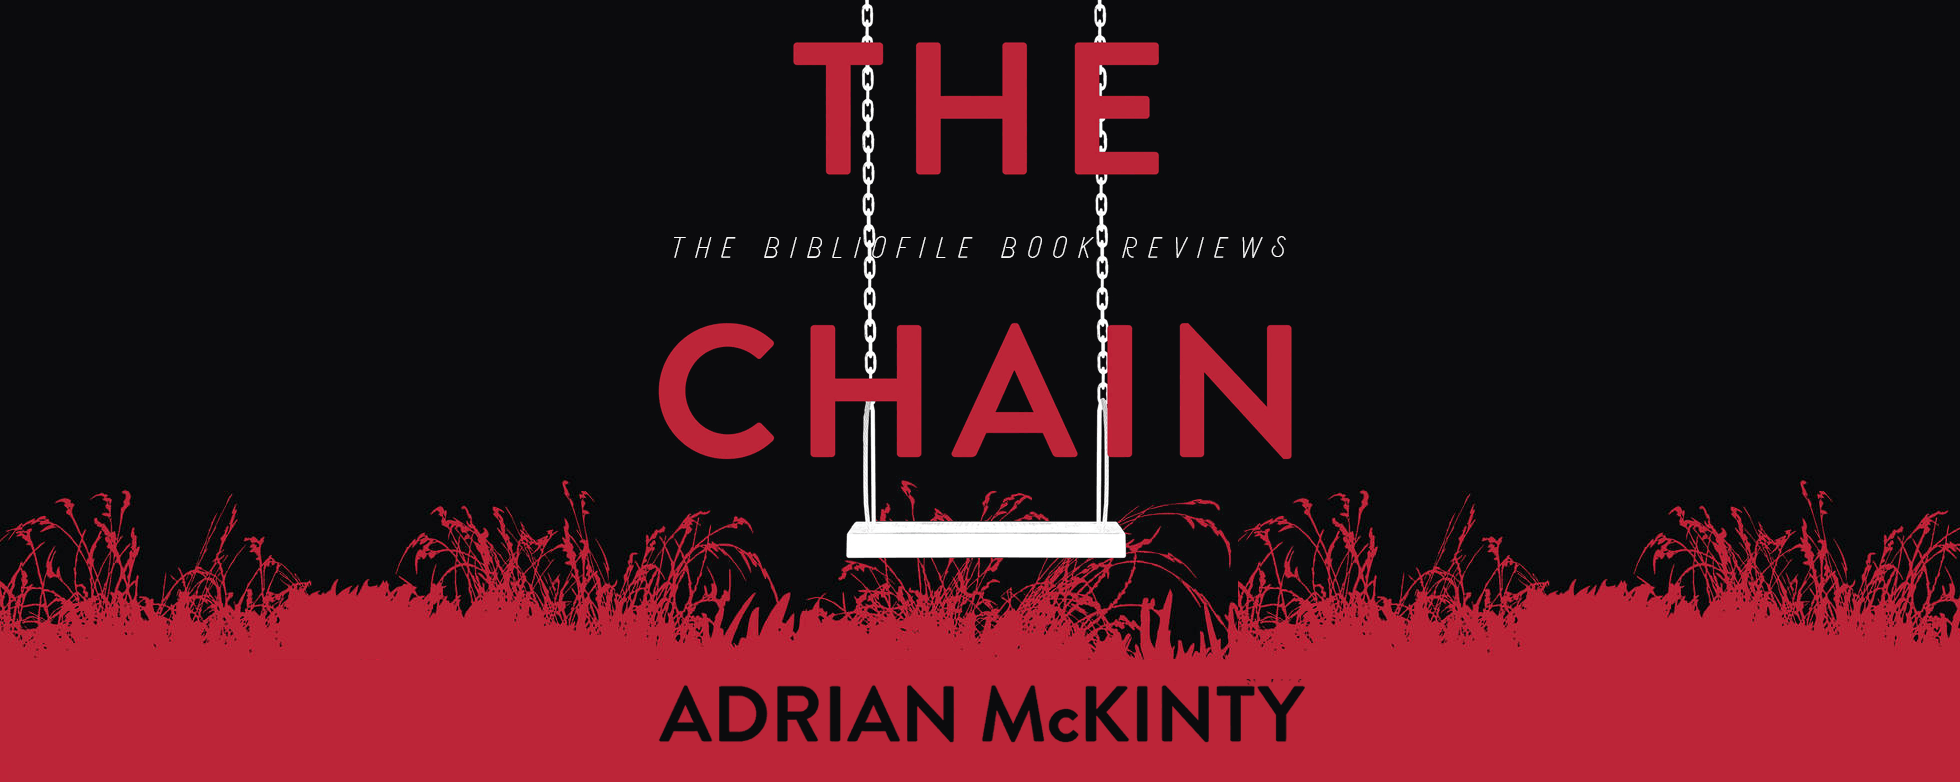 the chain adrian mckinty summary review